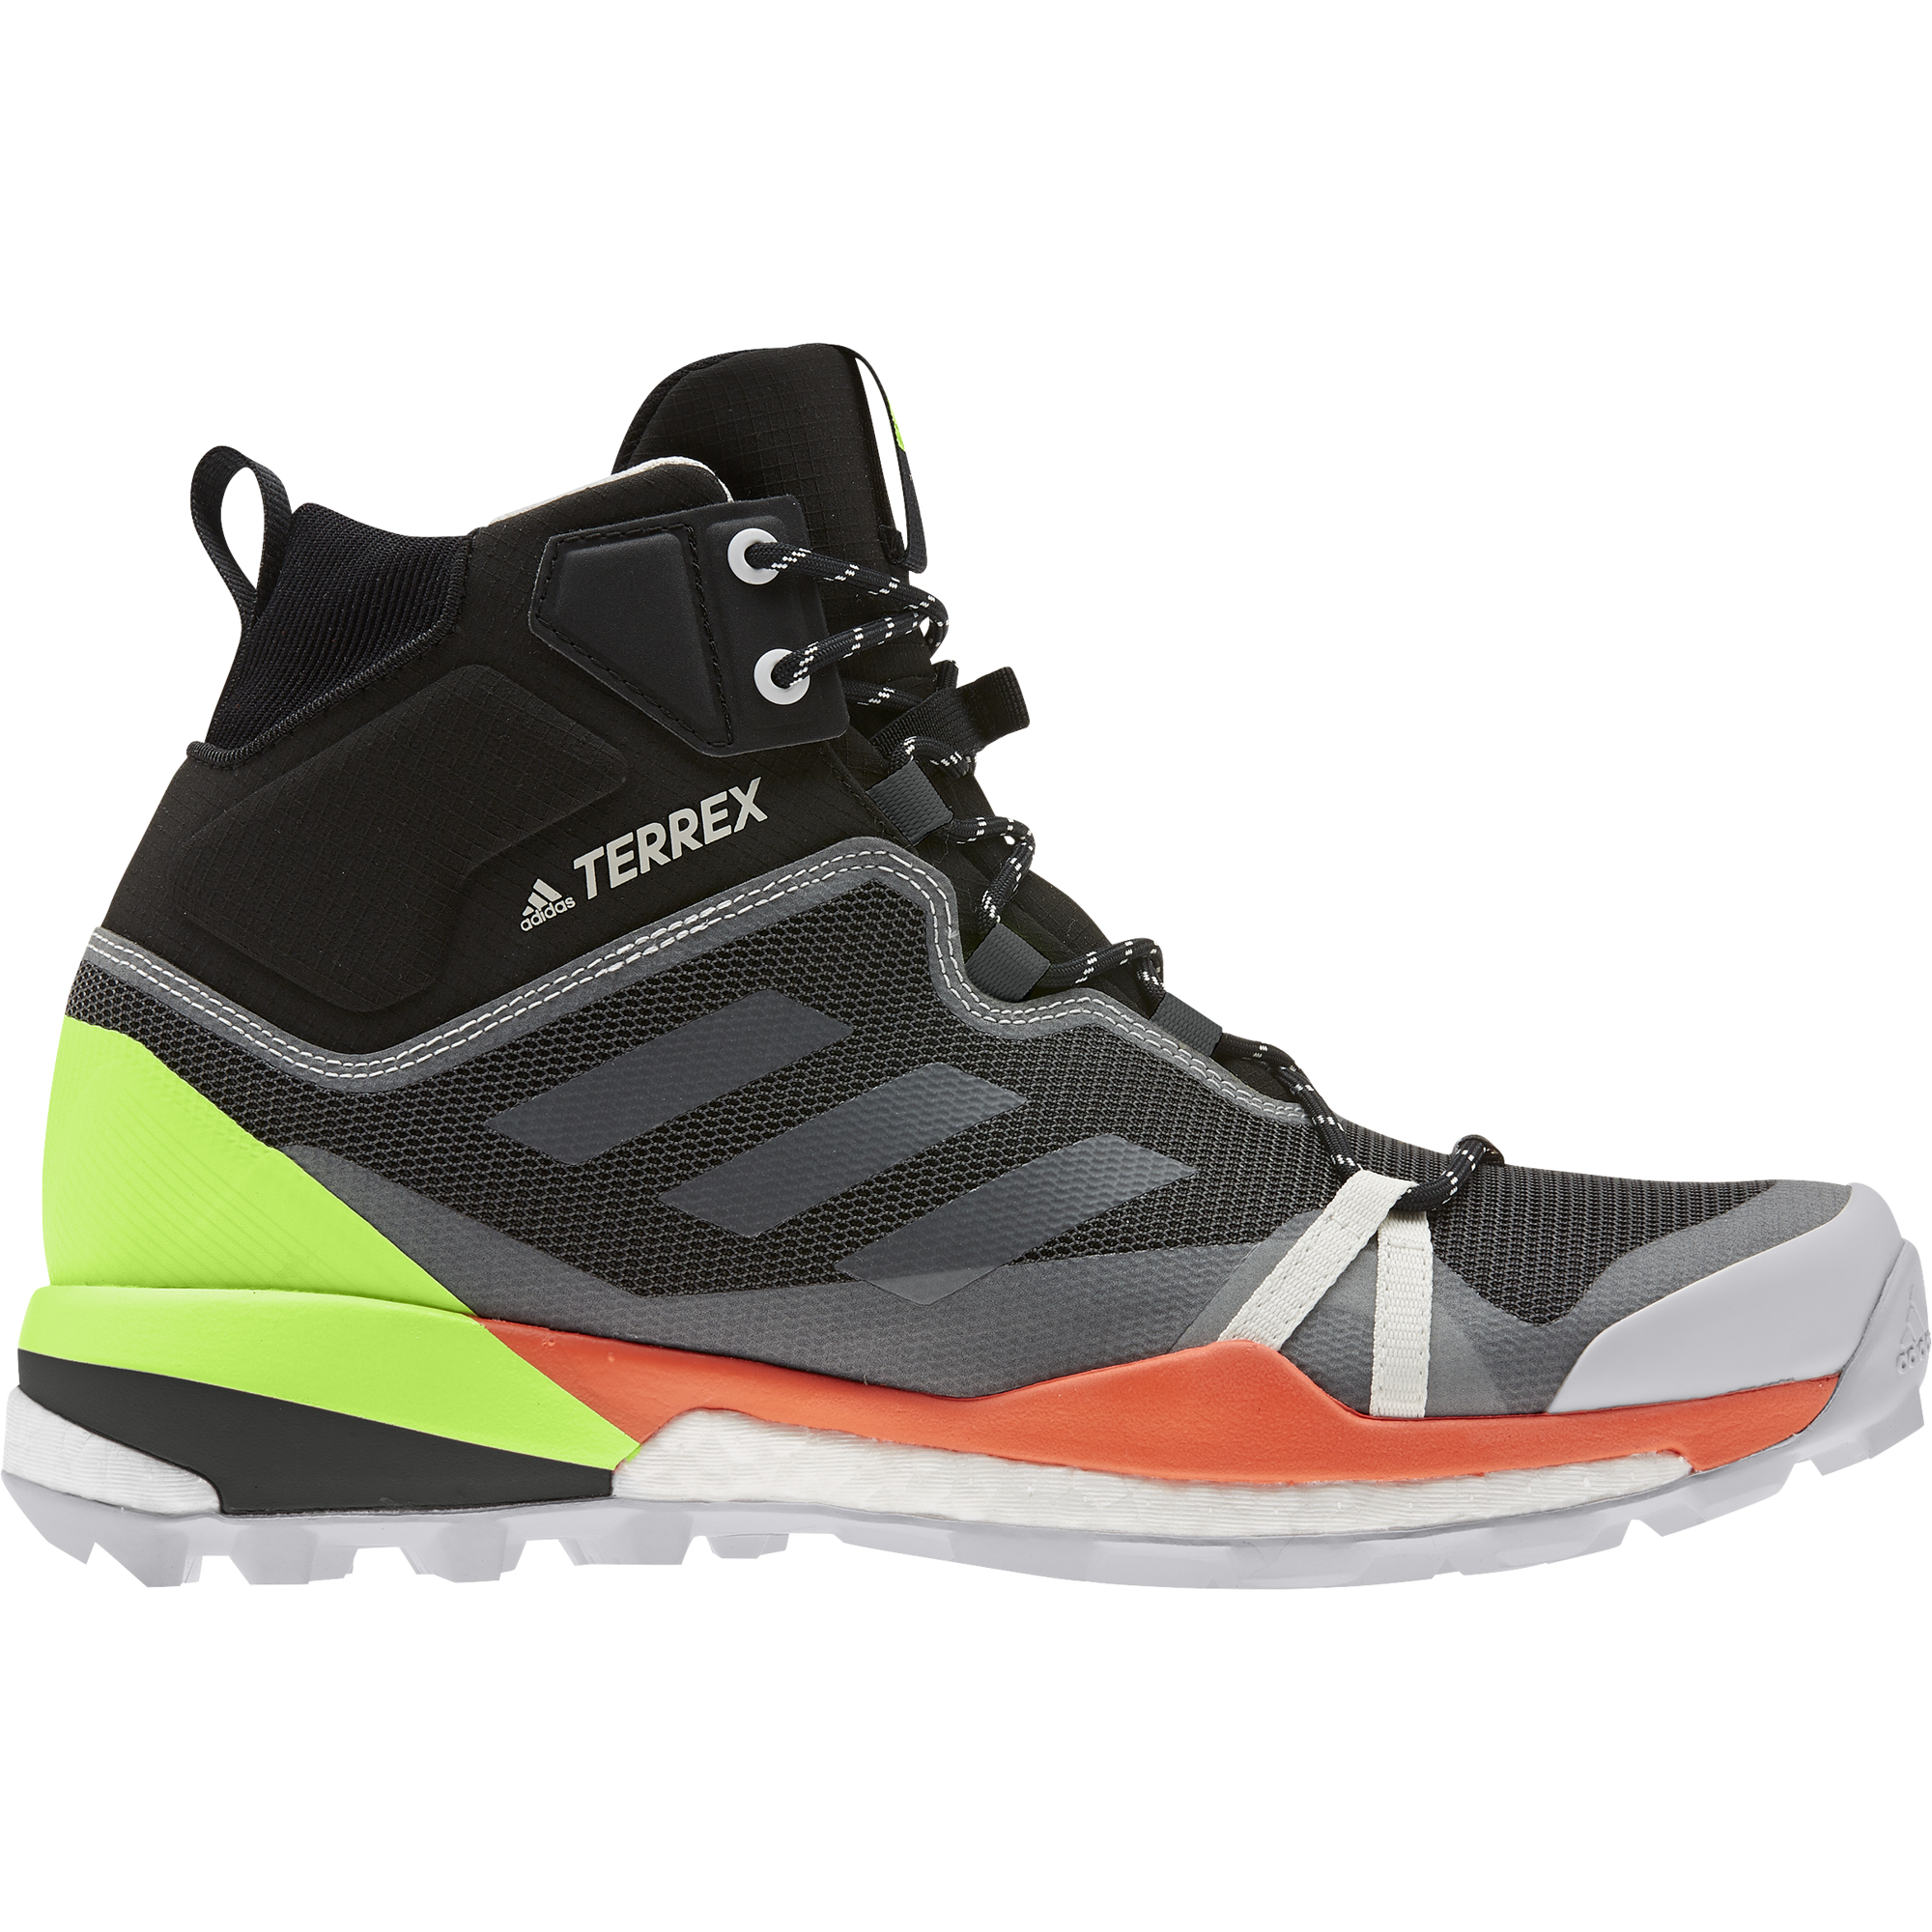 Adidas - Terrex Skychaser LT Mid | cycling shoes